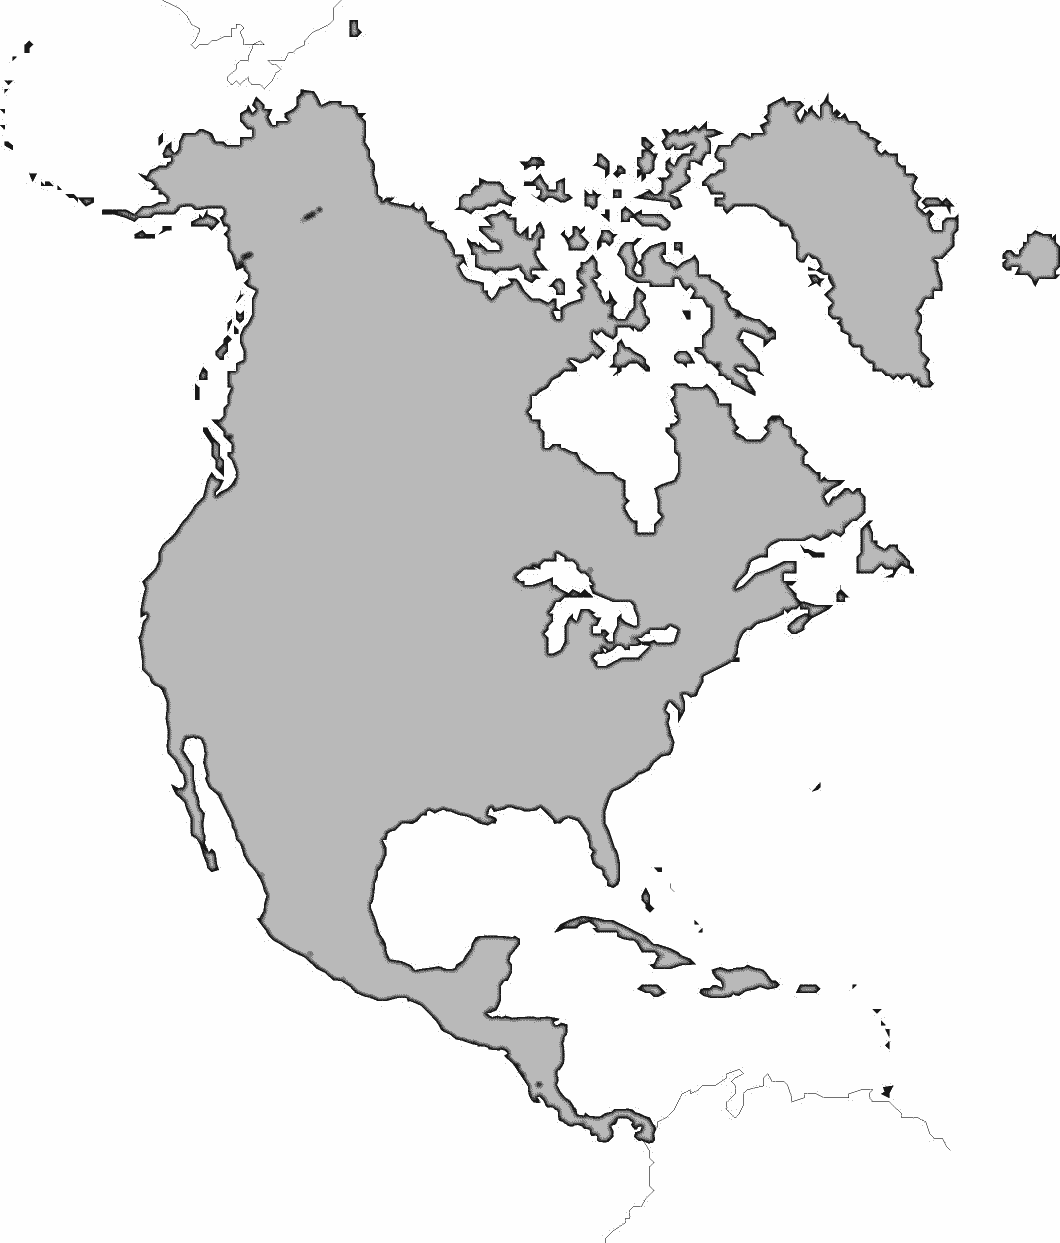 Blank Map Of North America Without Regional Borders